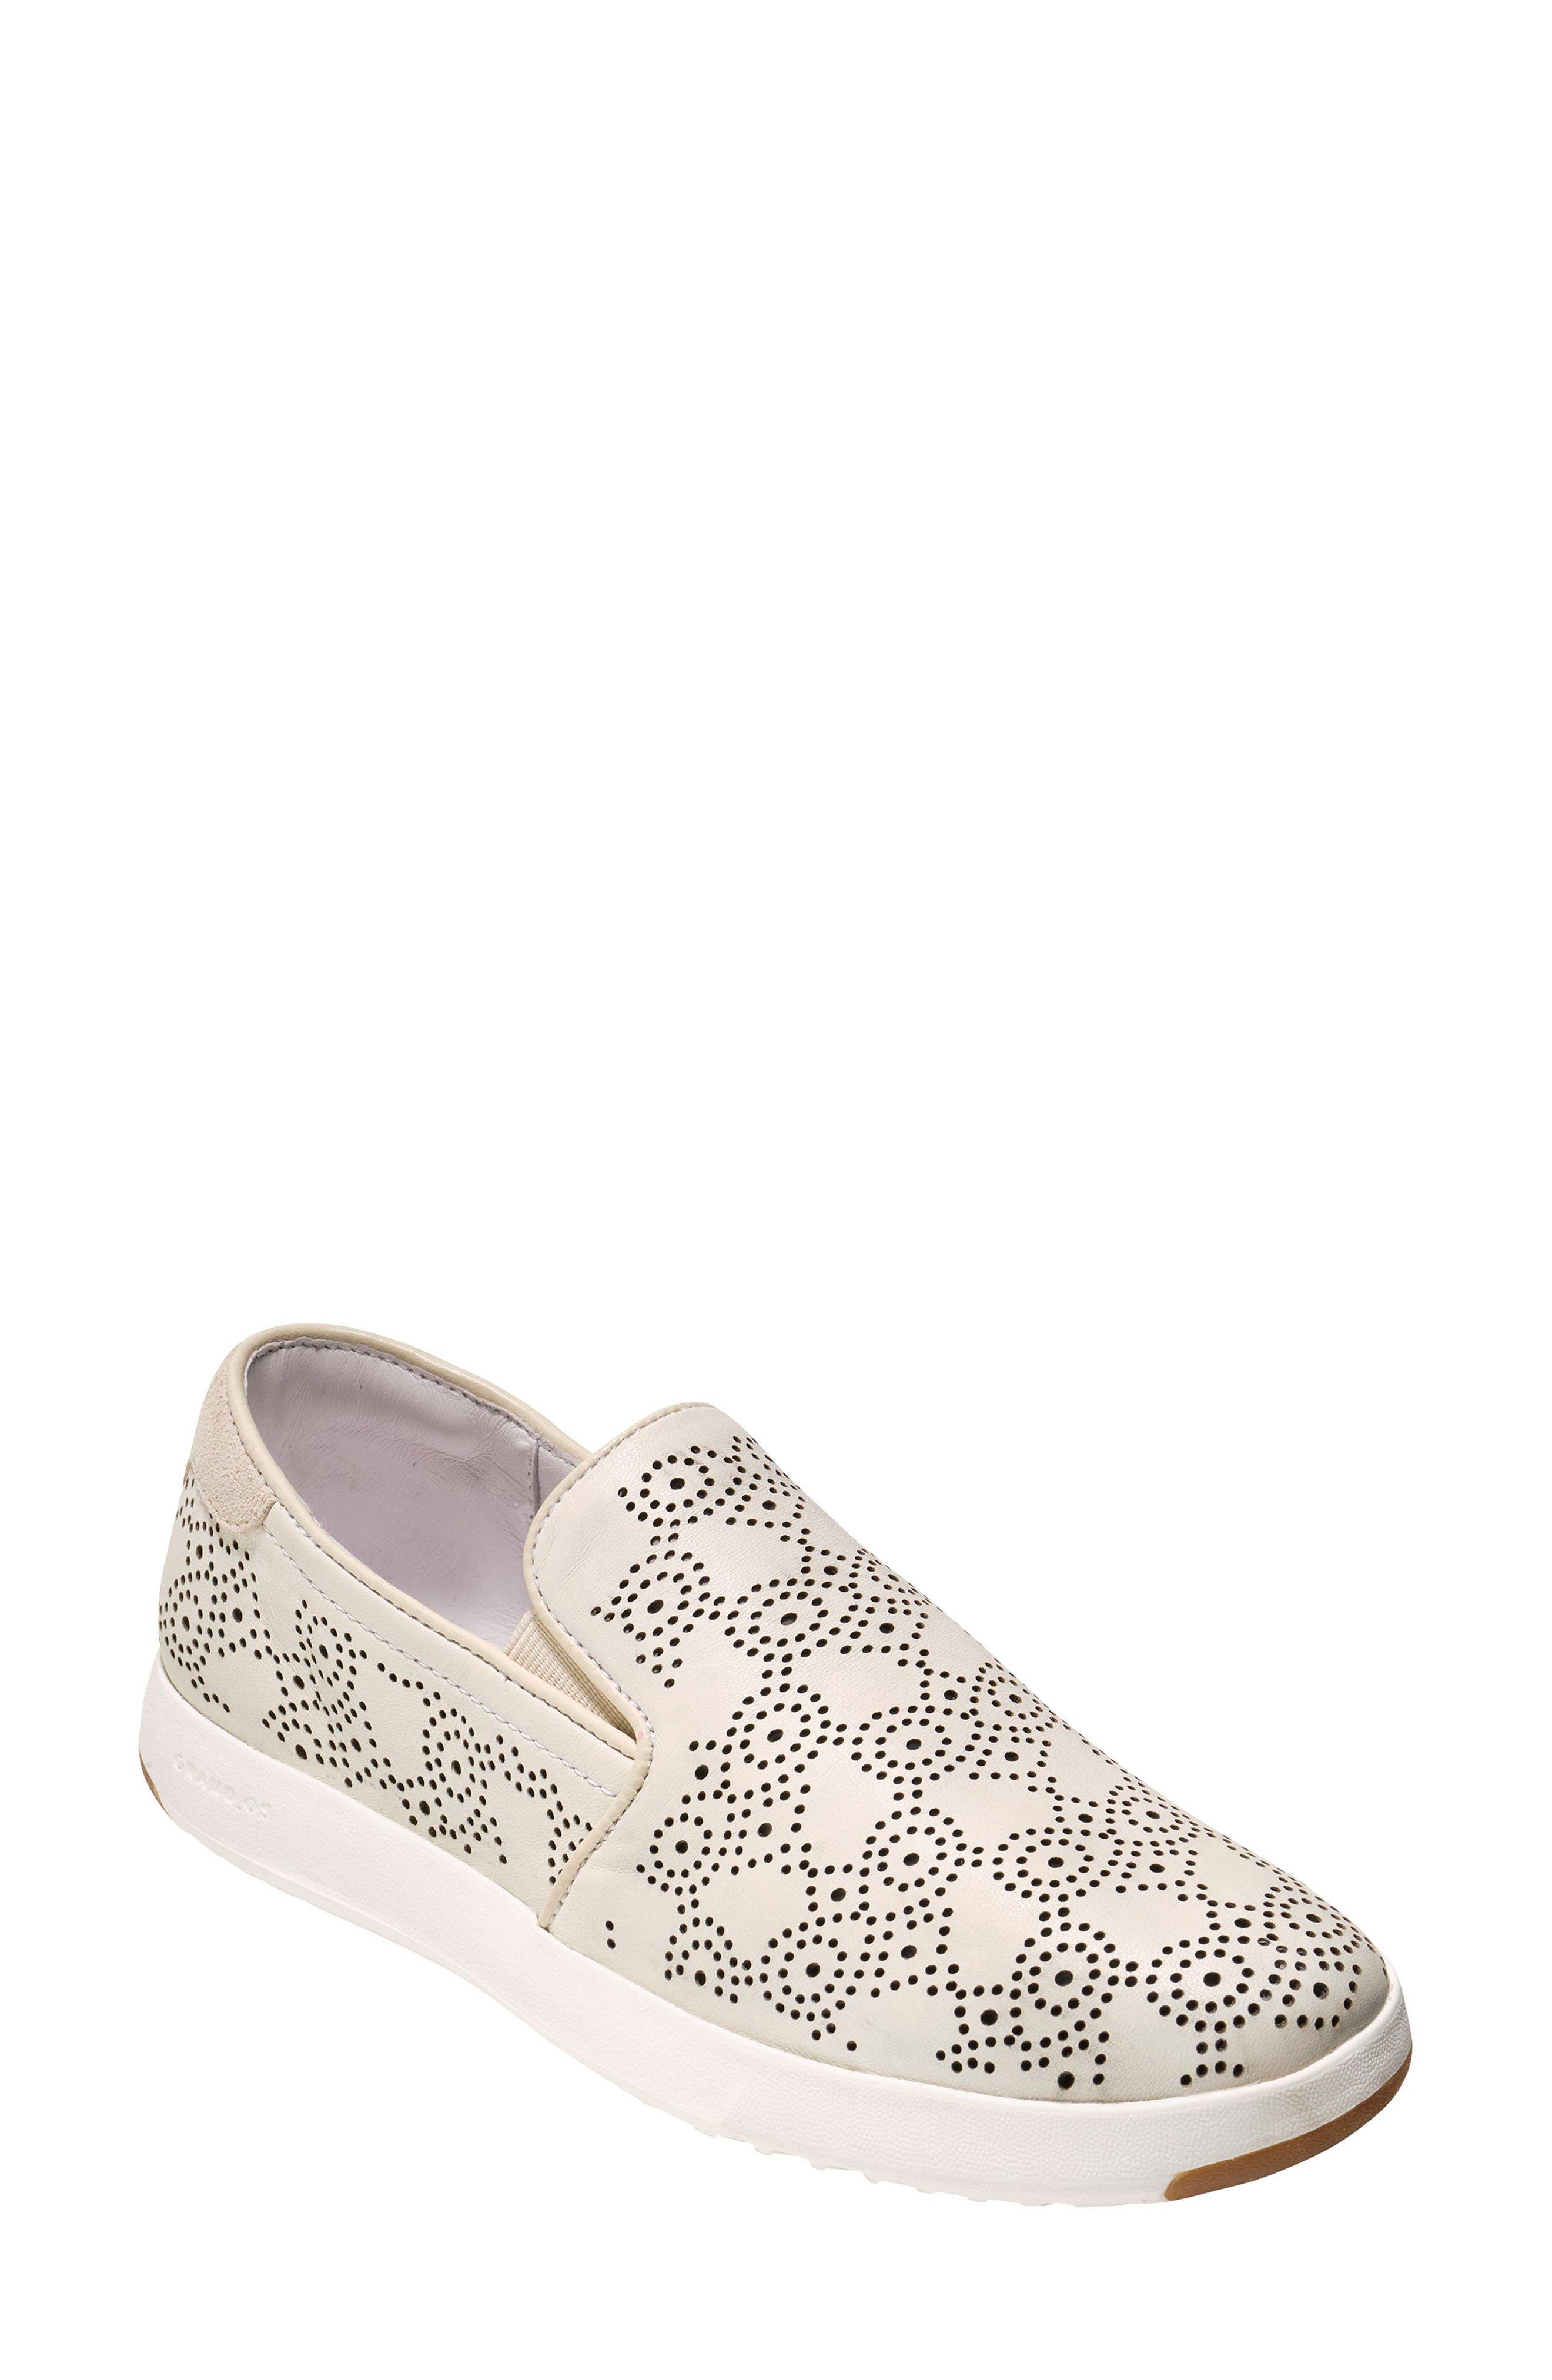 GrandPro Perforated Slip-On Sneaker,                             Main thumbnail 1, color,